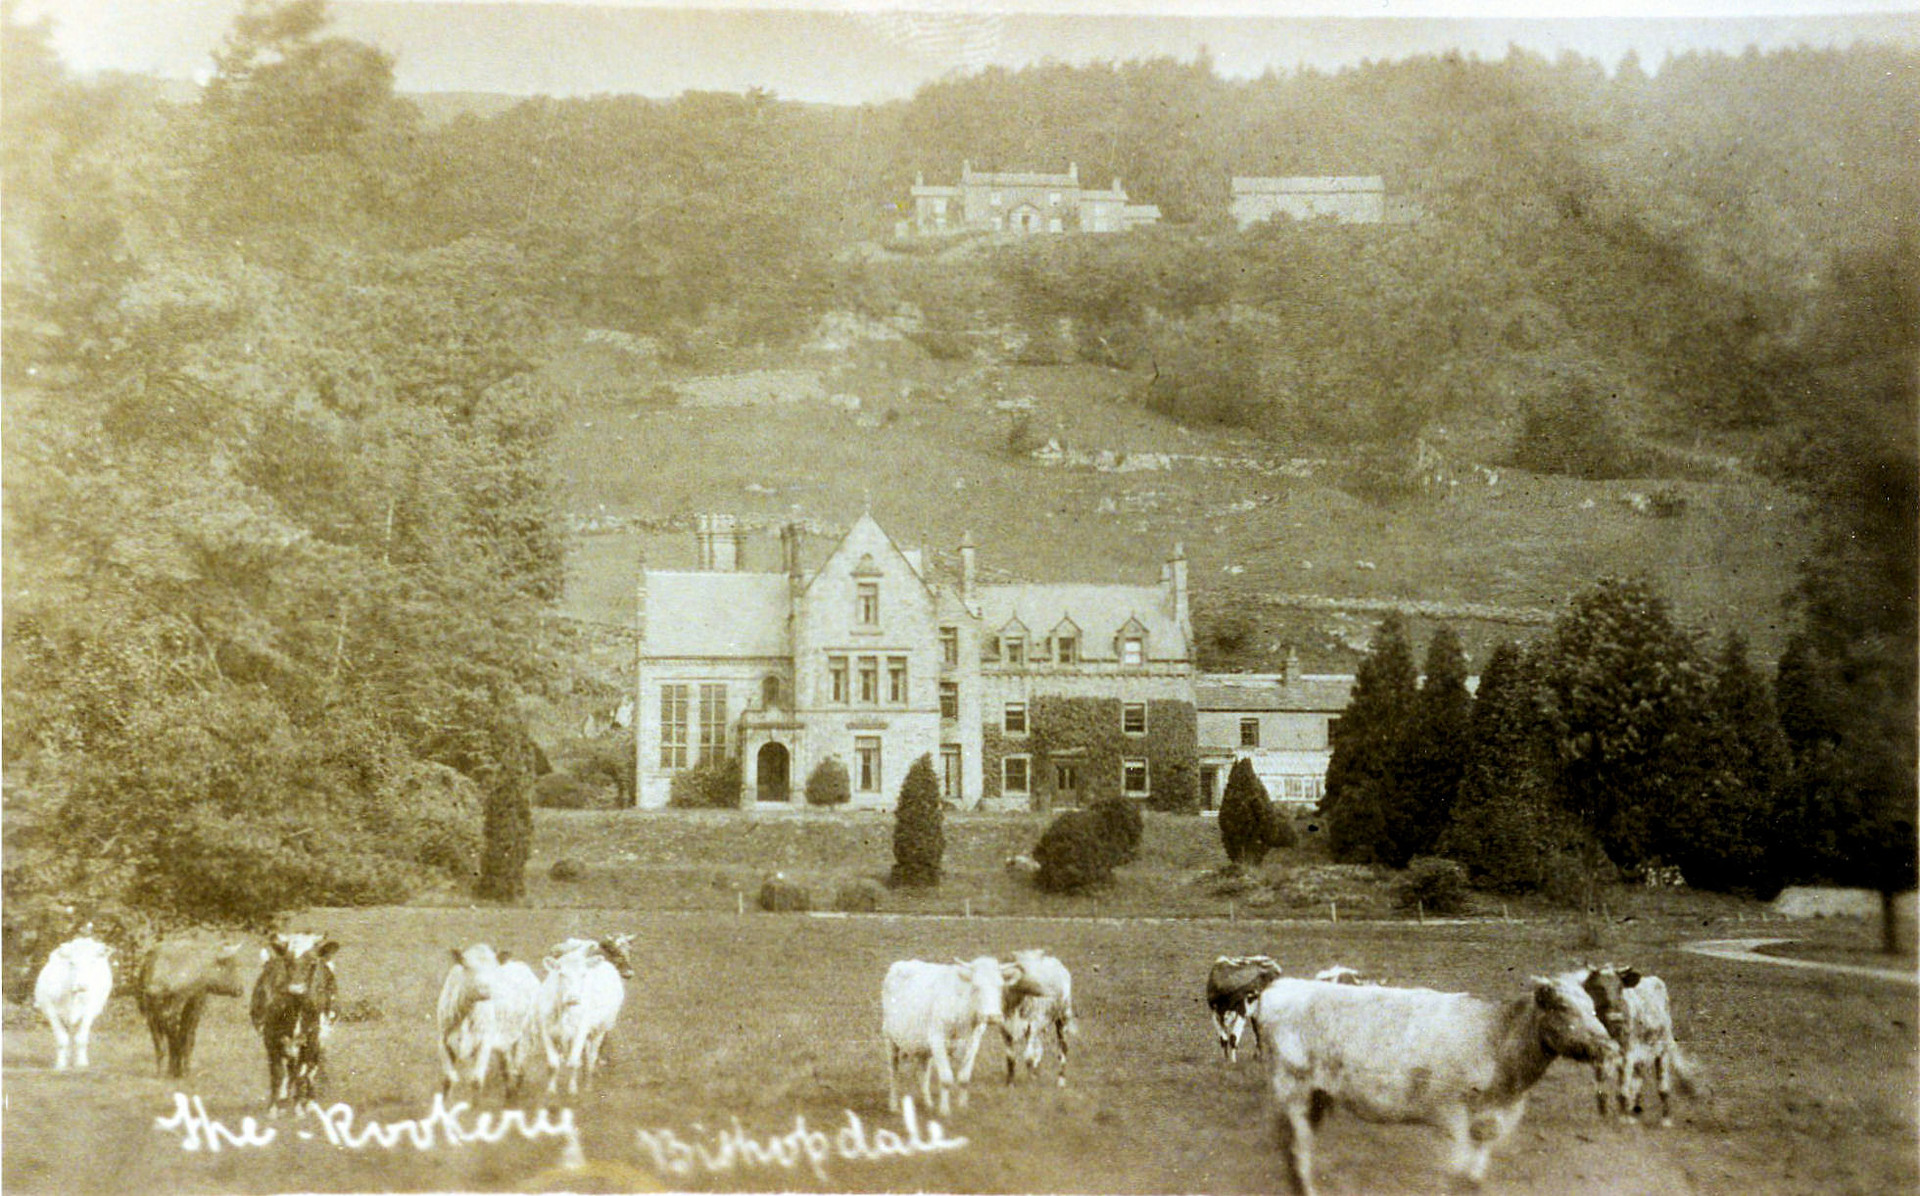 Close up of the magificent Rookery and Scar Top Farm on the hill top, dairy shorthorns in the foreground. Courtesy of Ann Holubecki.